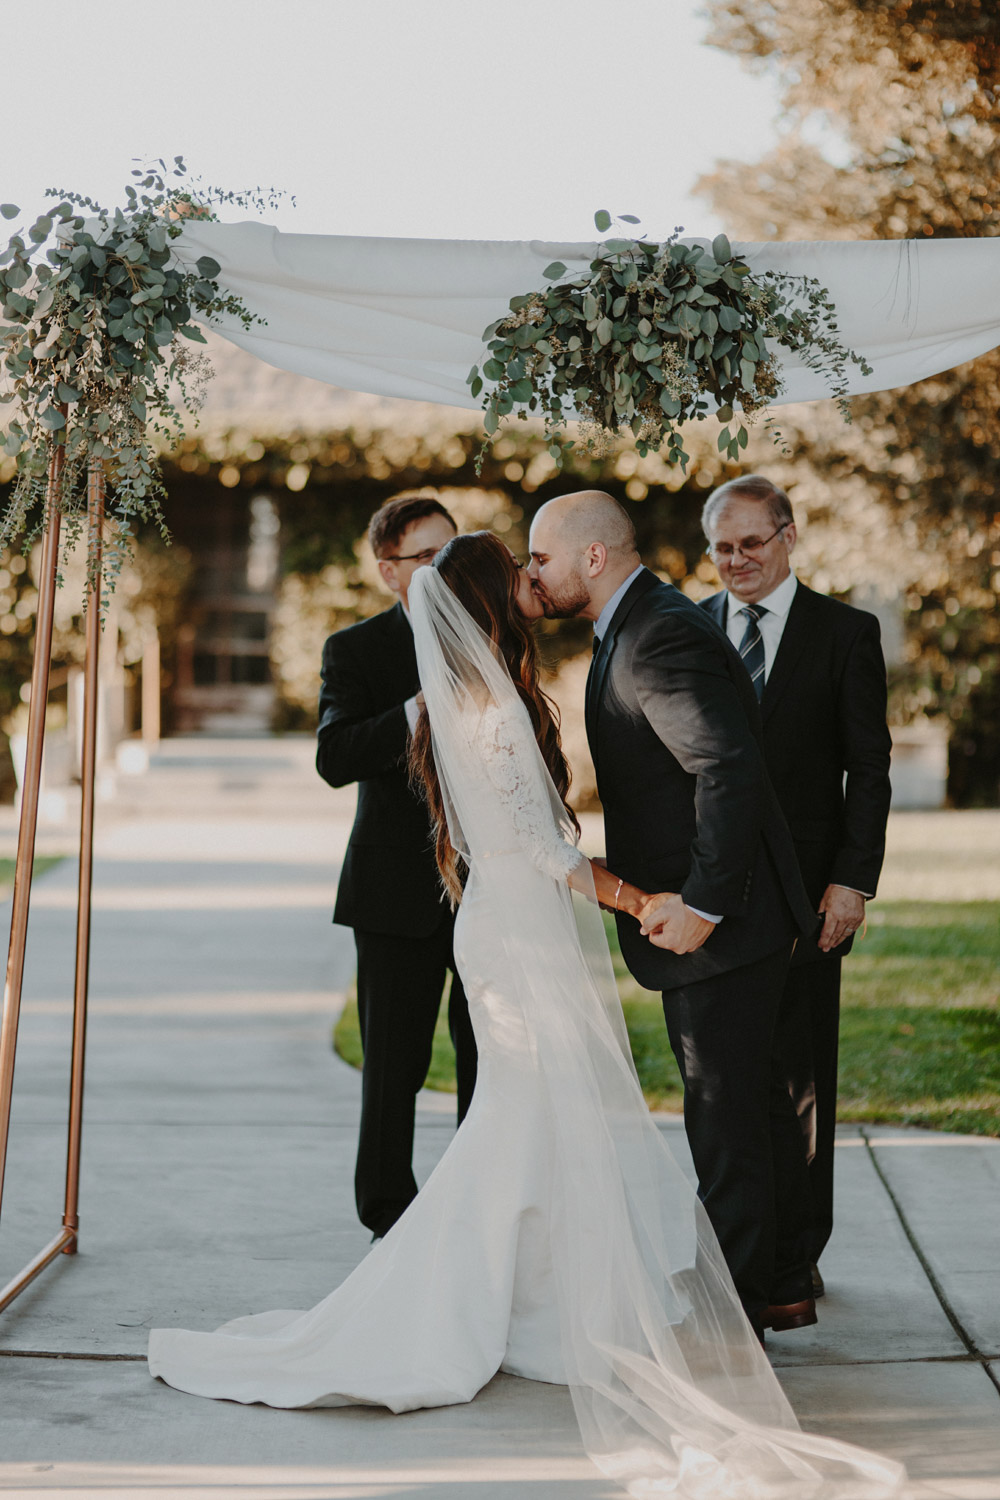 Greg-Petersen-San-Francisco-Wedding-Photographer-1-57.jpg